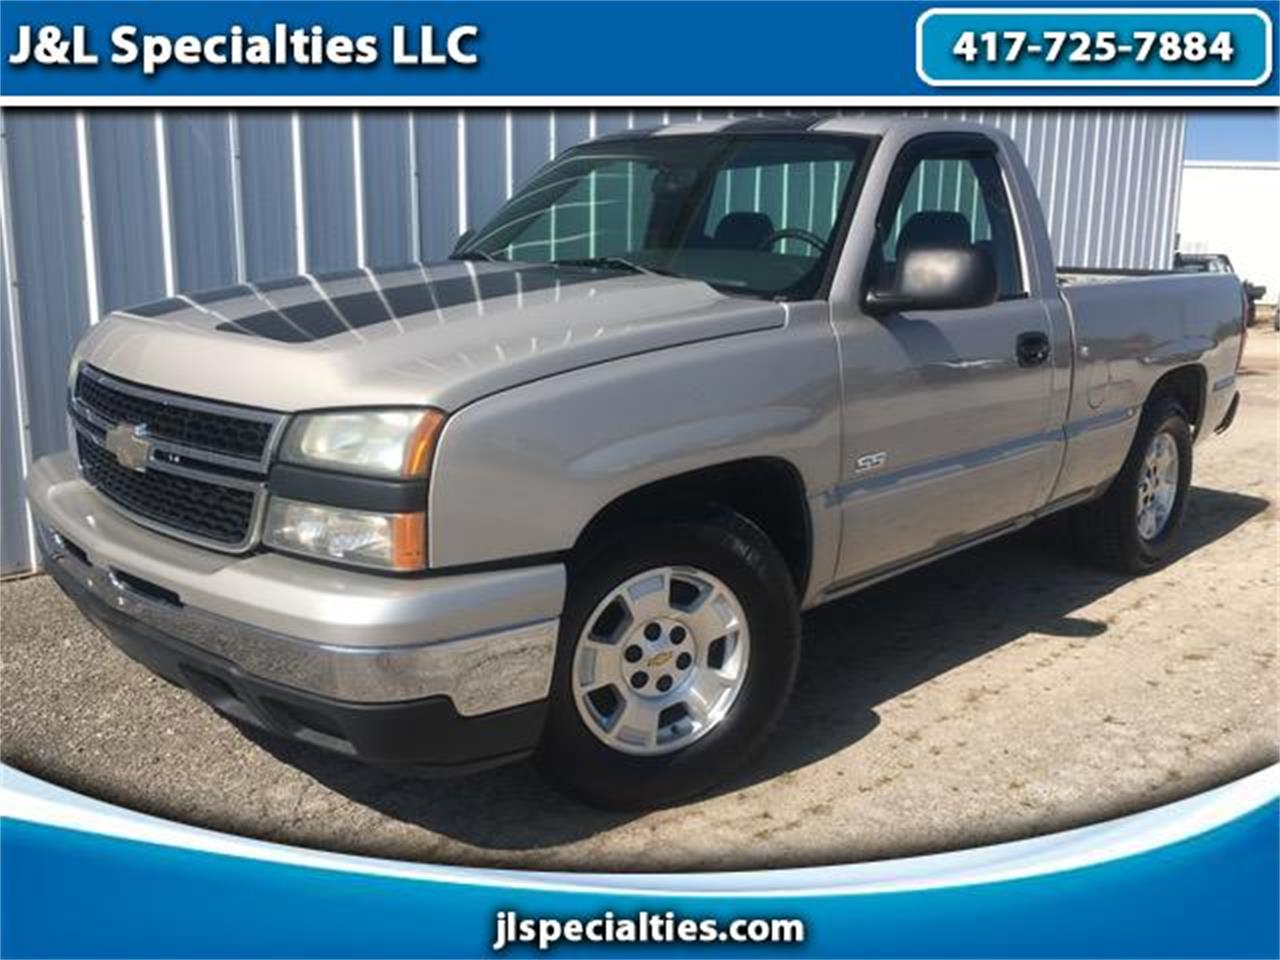 Large Picture of 2006 Chevrolet Silverado located in Nixa Missouri Offered by J&L Specialties LLC - MGLQ